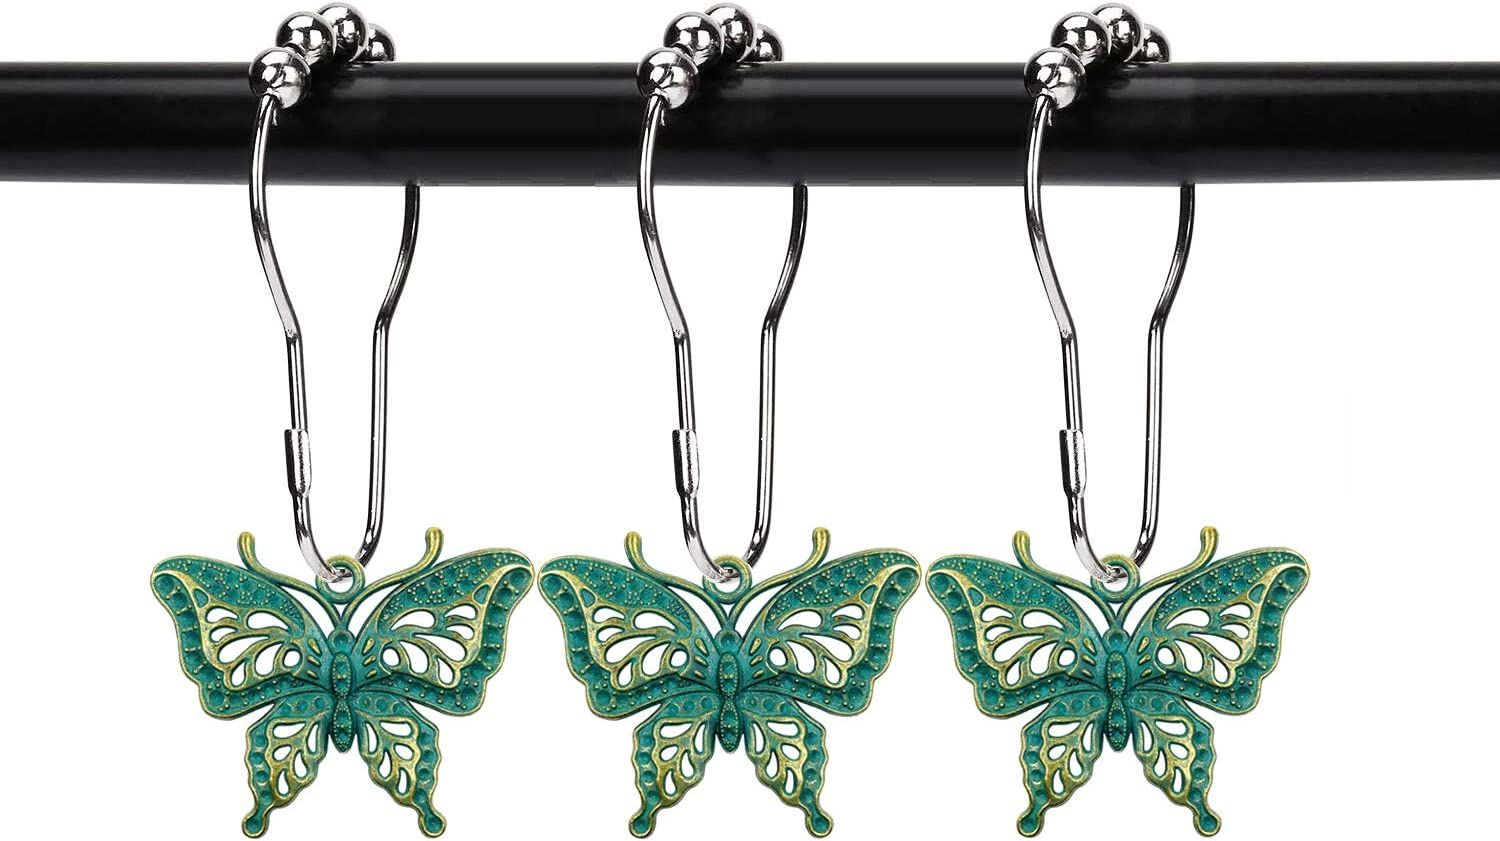 ZILucky Set of 12 Butterfly Decorative Shower Curtain Hooks Garden Nature Insect Style Theme Home Shower Curtain Rings Decor Accessories Bathroom Rustproof (Patina)